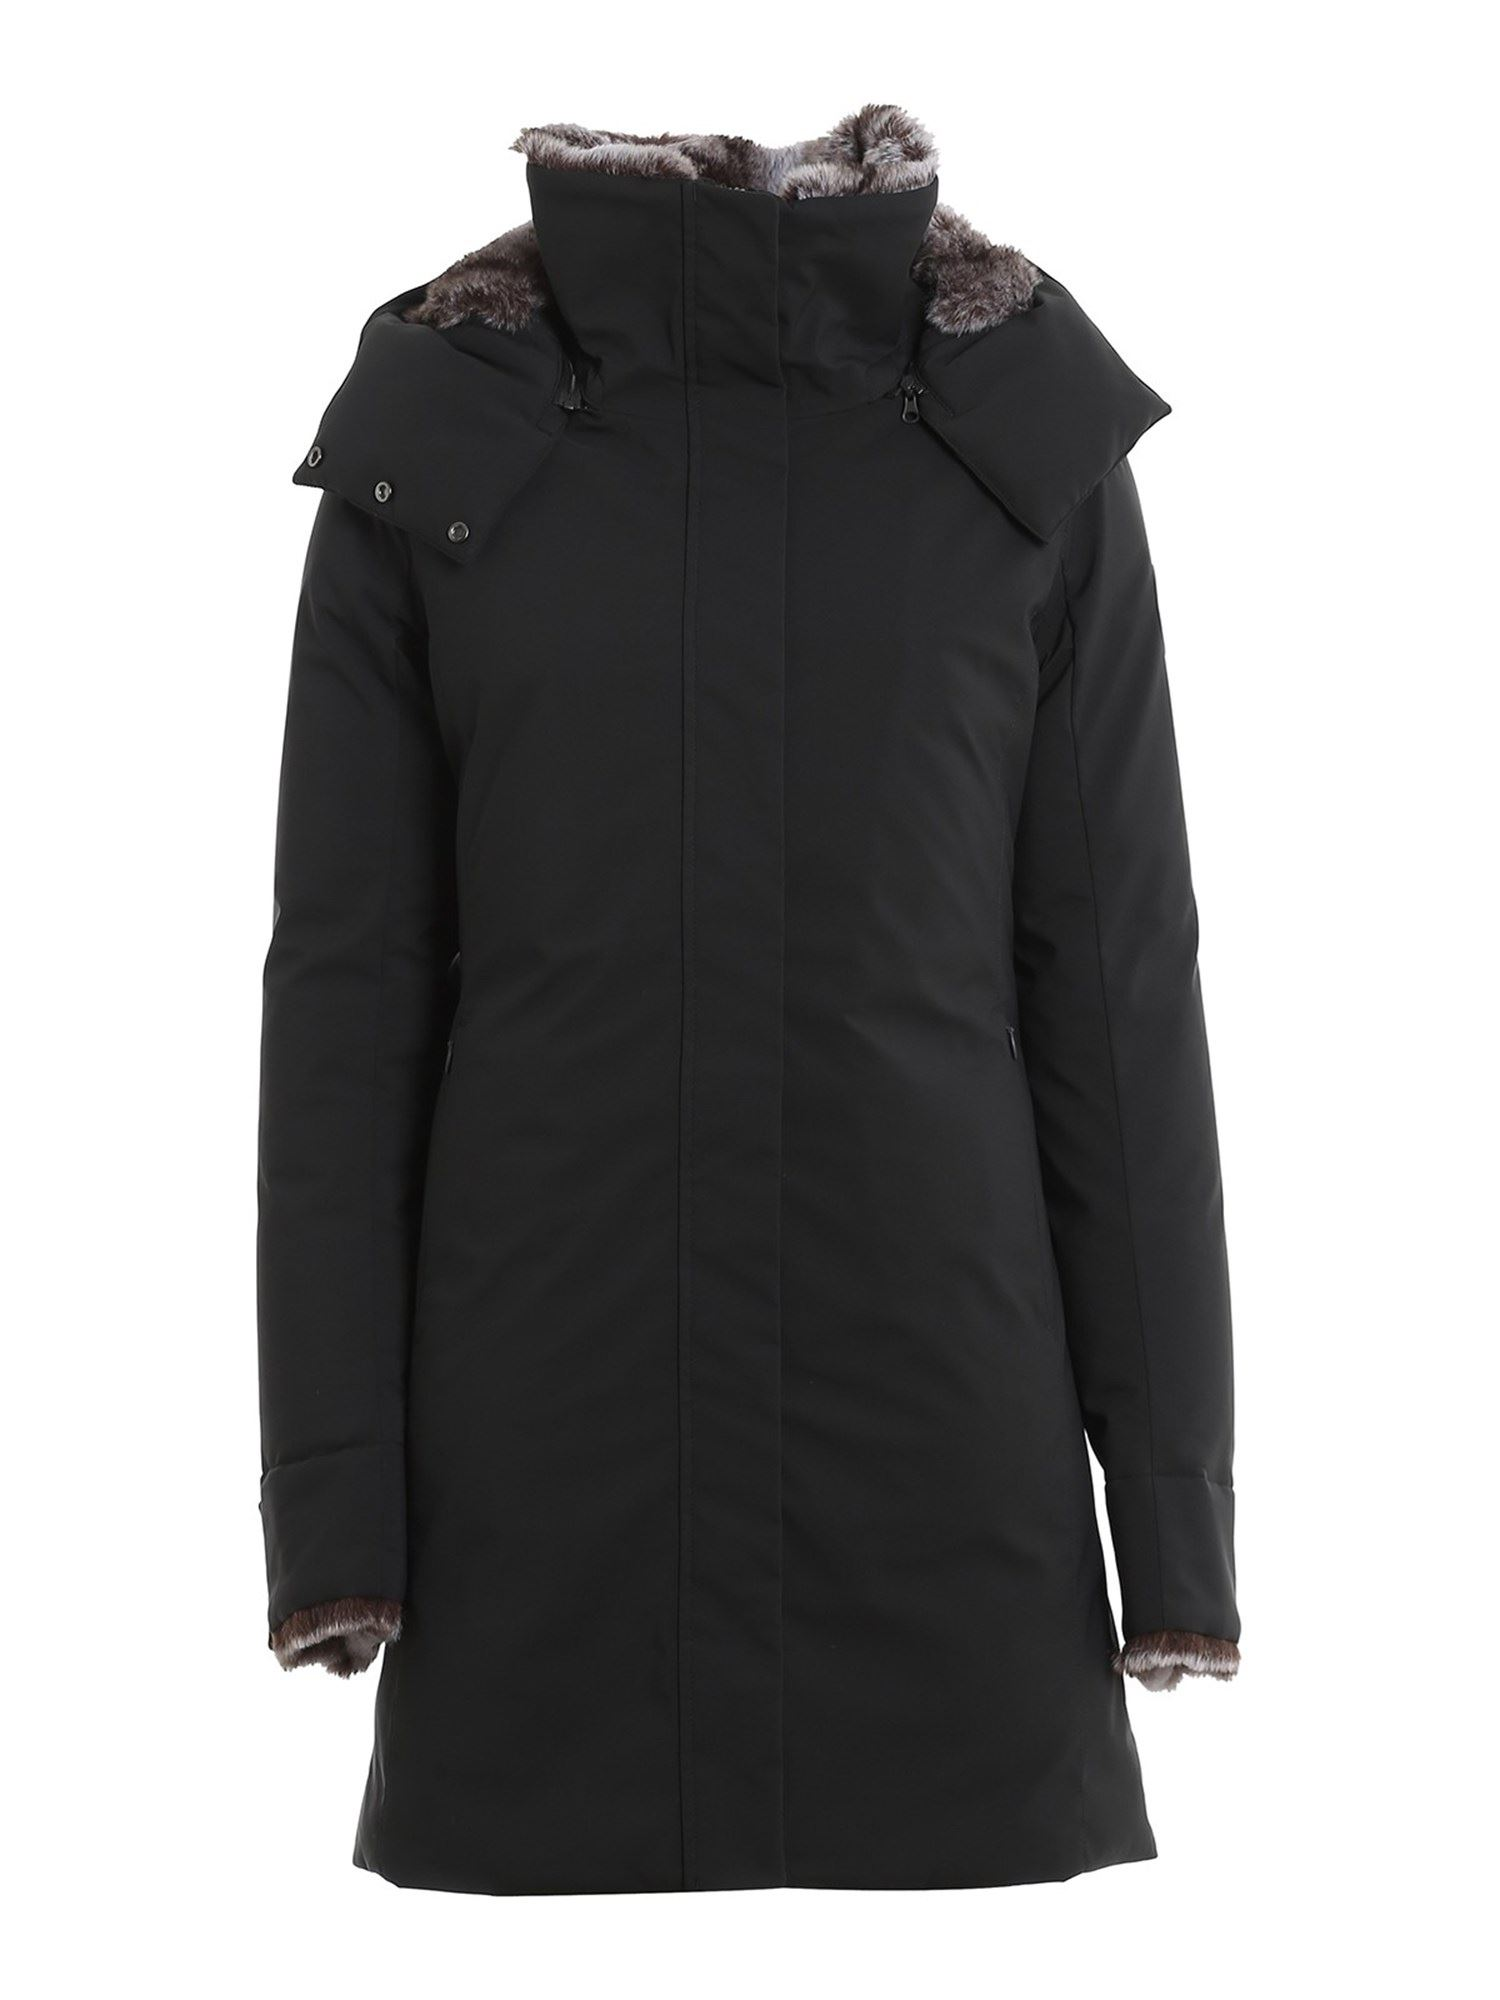 Save The Duck ARCTIC ECO-FRIENDLY DOWN JACKET IN BLACK